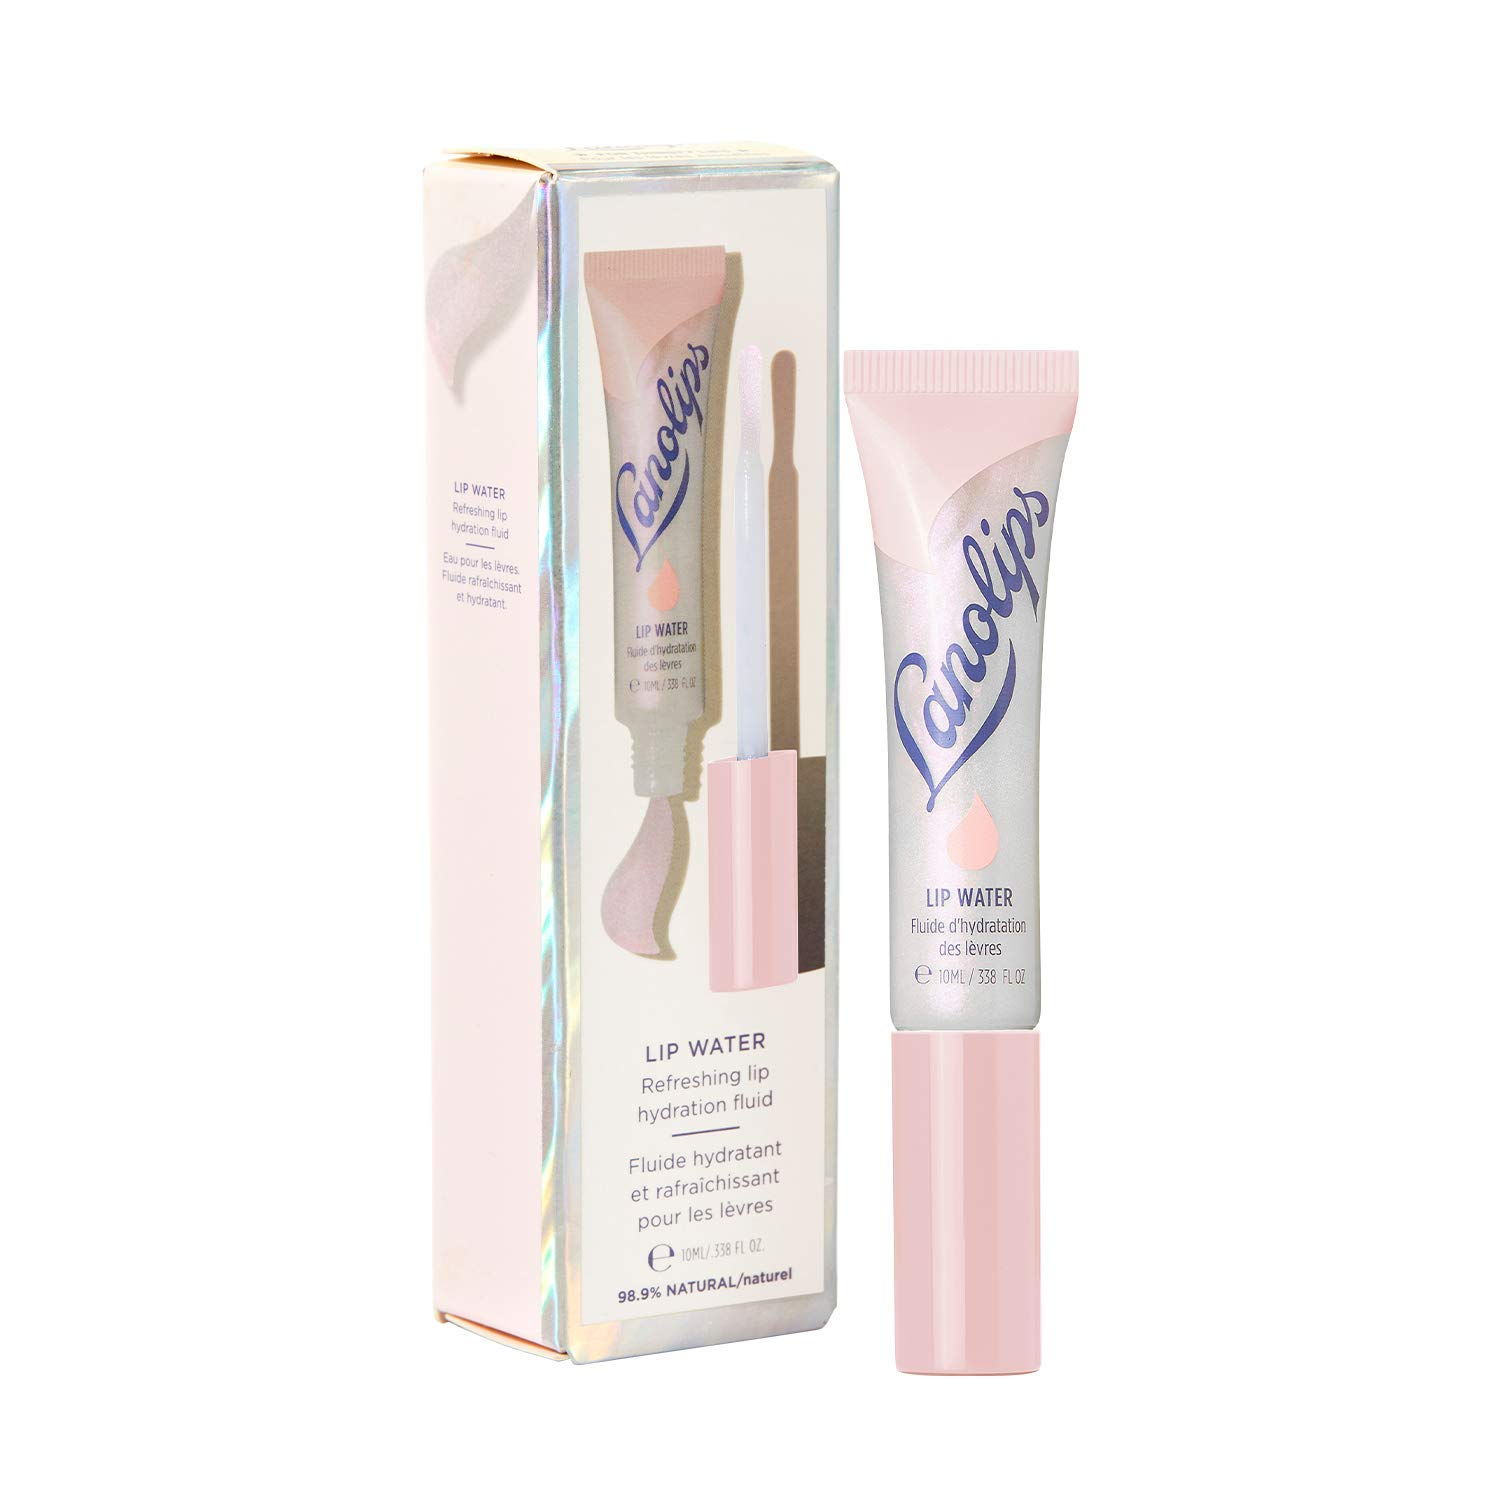 Lanolips Lip Water - Hydrating Lanolin Lip Serum with Hyaluronic Acid, Glycerin + Shimmer Tints for Hydrated, Glowing, Plump Looking Lips (10ml / 0.34 fl oz)